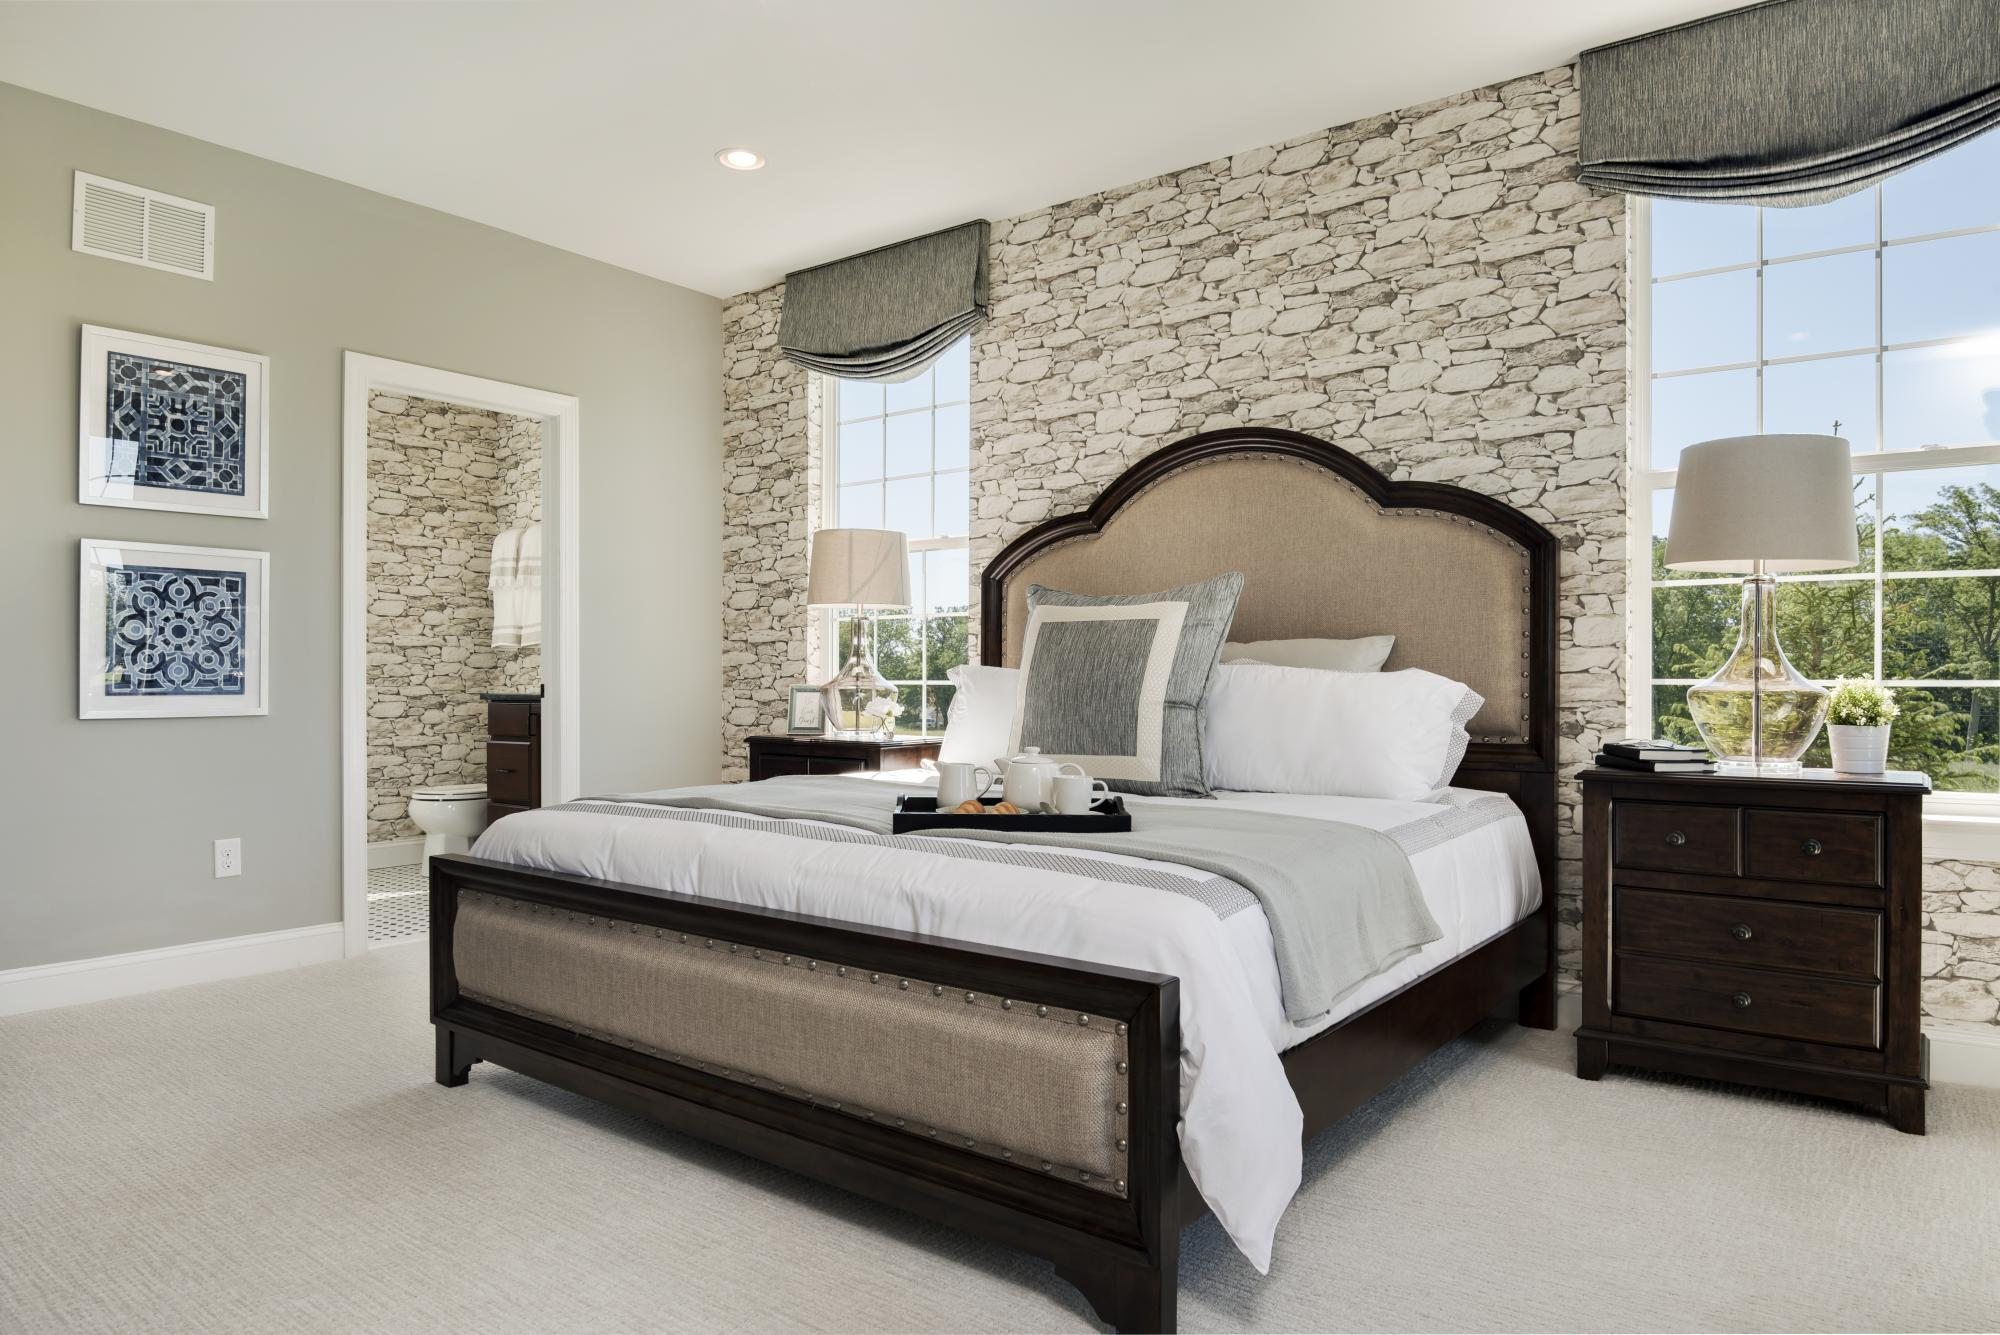 Bedroom featured in The Monroe By Hallmark Homes Group in Philadelphia, PA